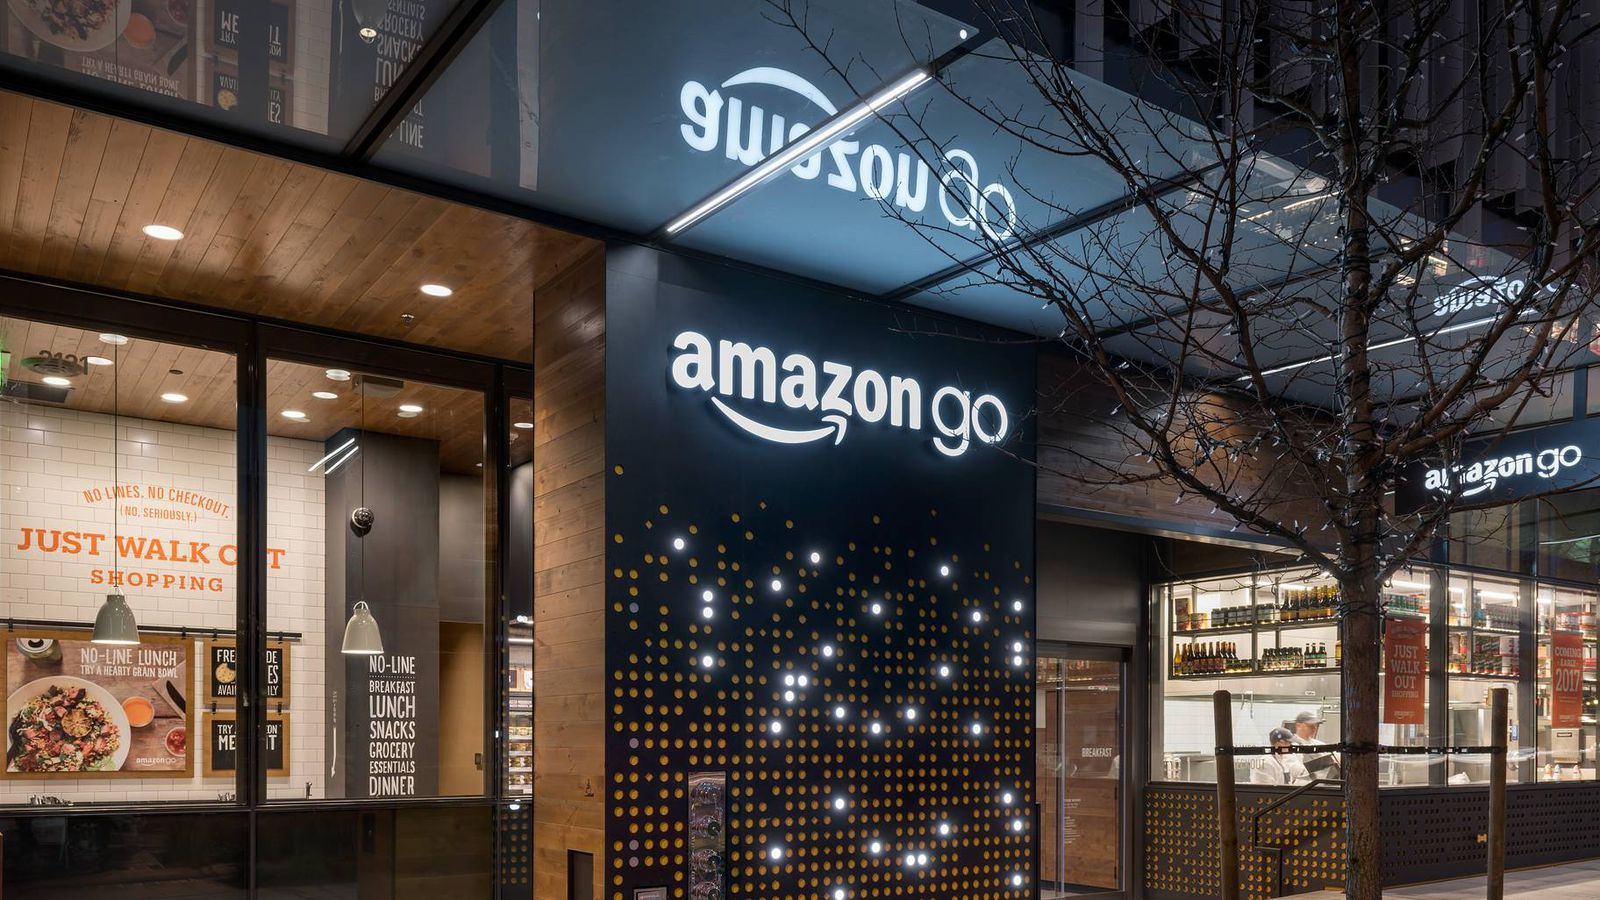 Amazon Just Launched A Cashierfree Convenience Store The Verge - Invoice system free online health food store